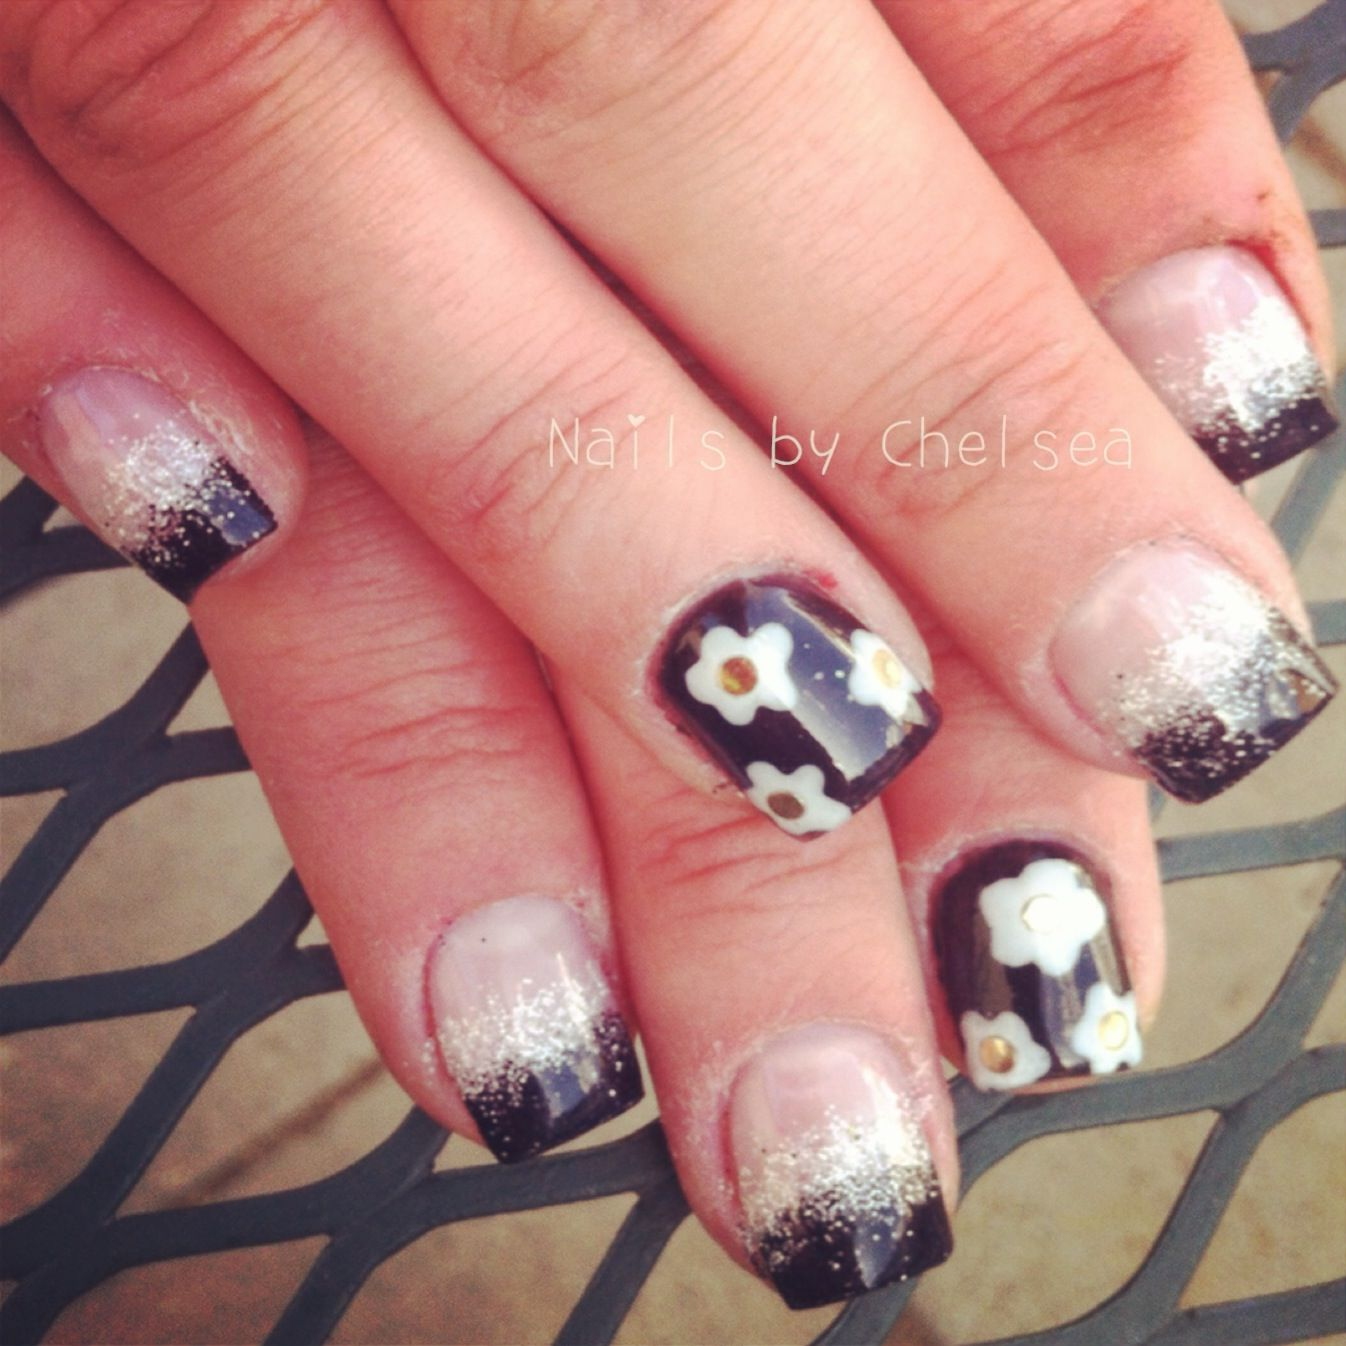 Marc Jacobs Daisy nails 2013 | Nails by Chelsea Devine | Pinterest